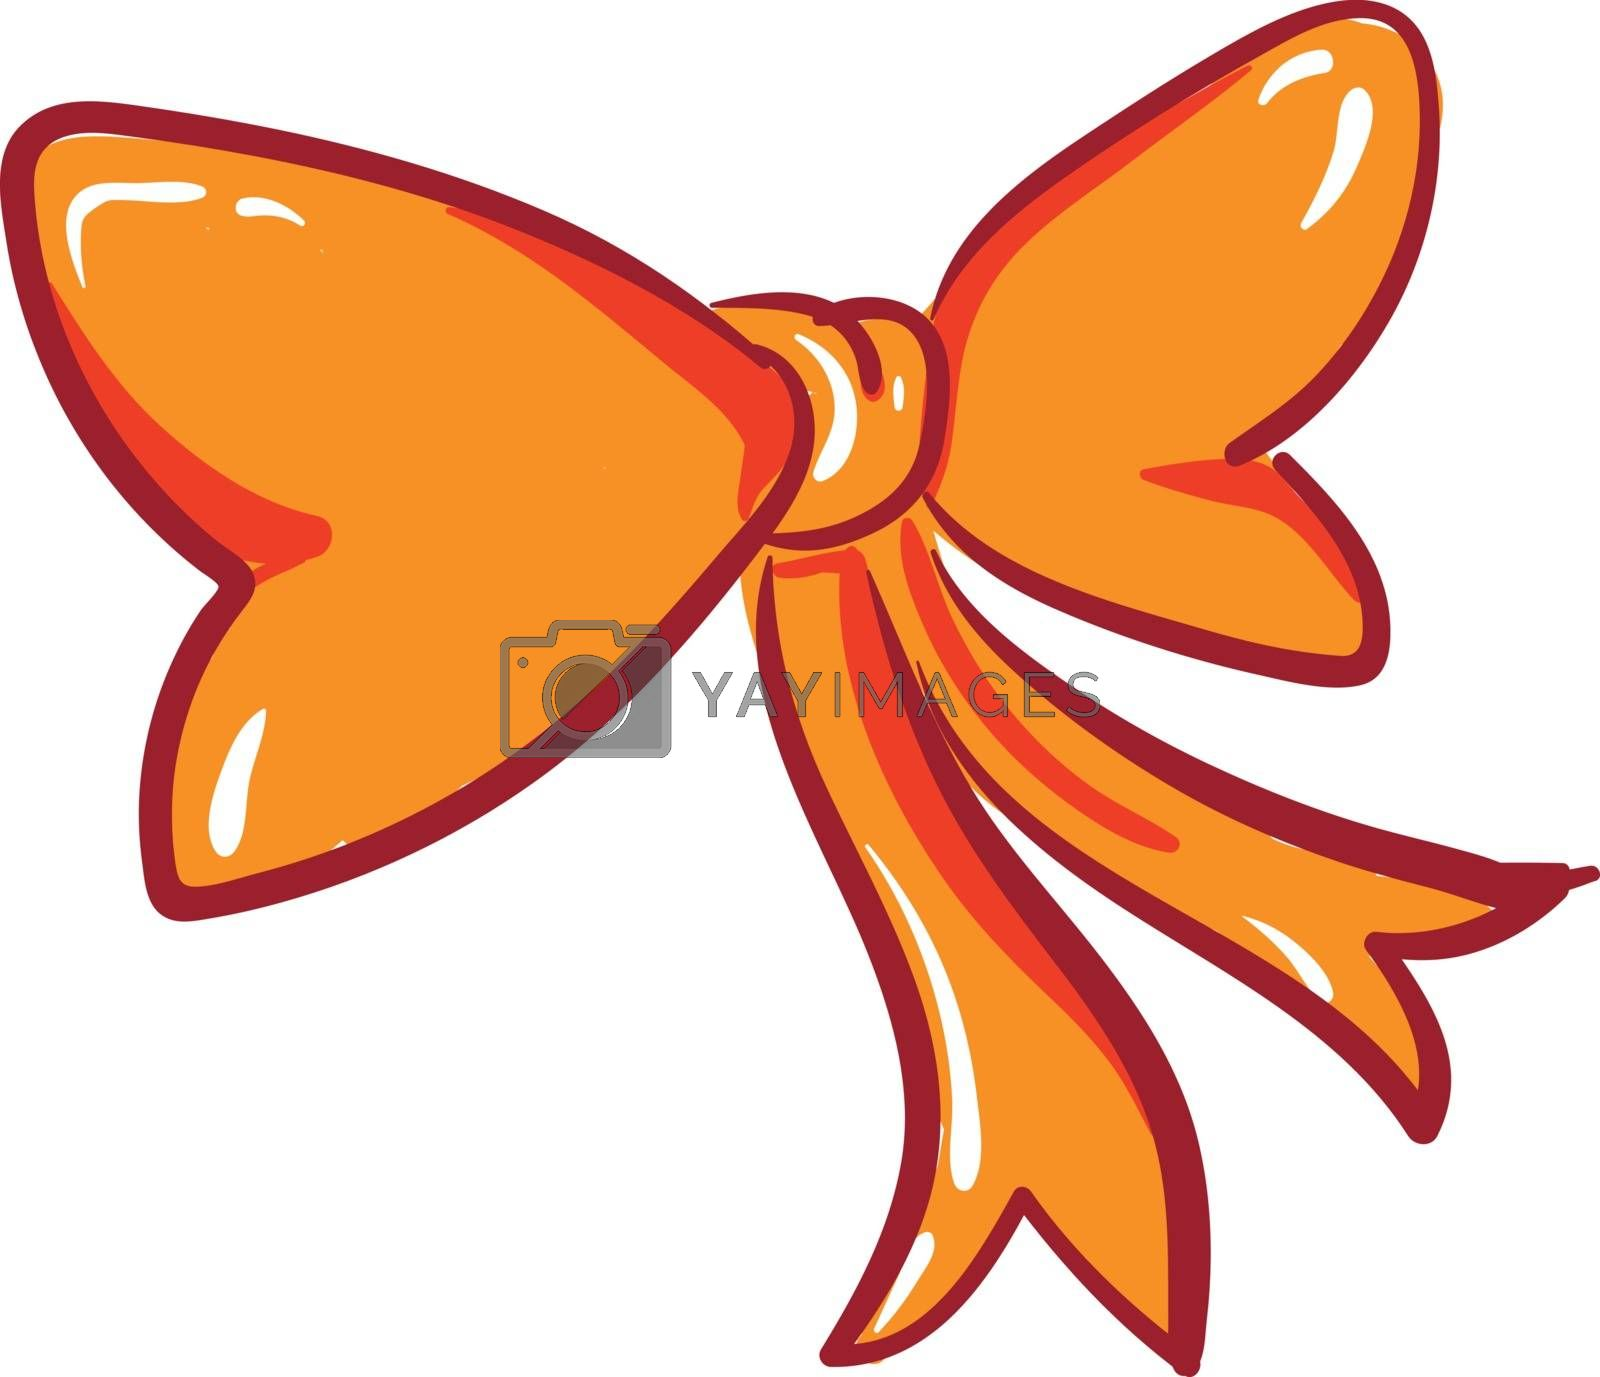 Royalty free image of Clipart of an orange bow vector or color illustration by Morphart